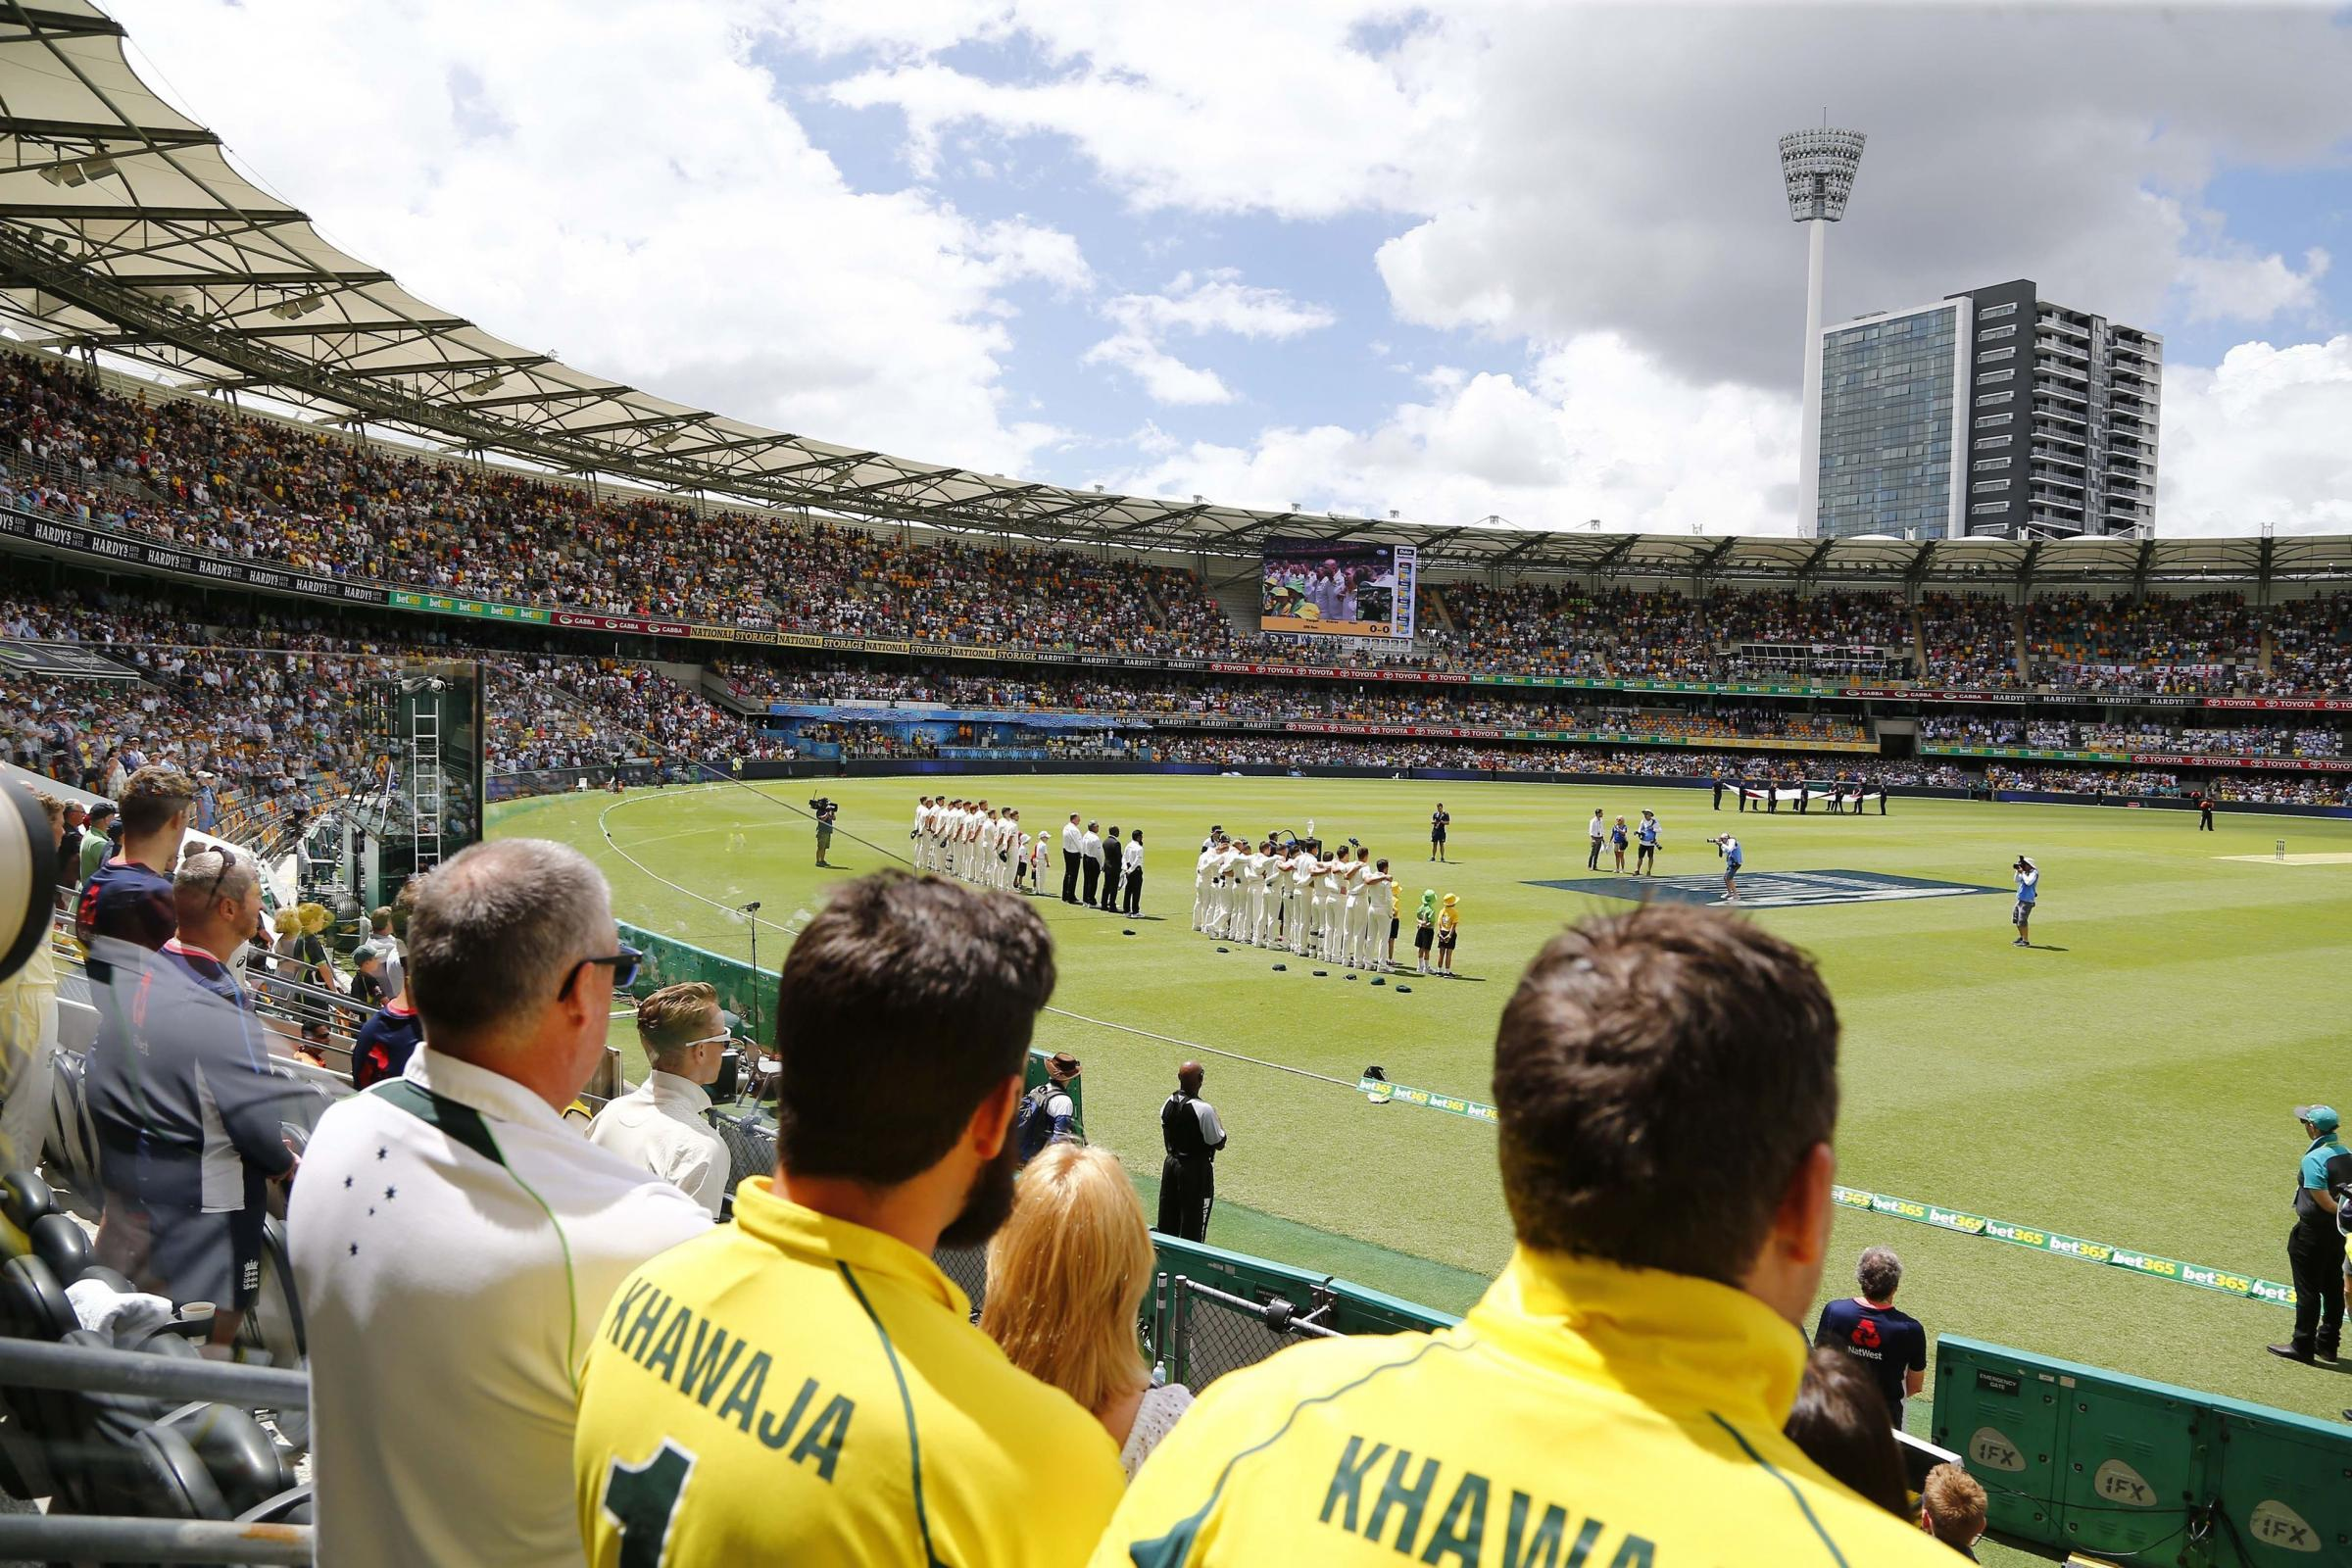 AND WE'RE OFF: The teams prepare for action on the first day of the Ashes Test match at The Gabba, Brisbane yesterday